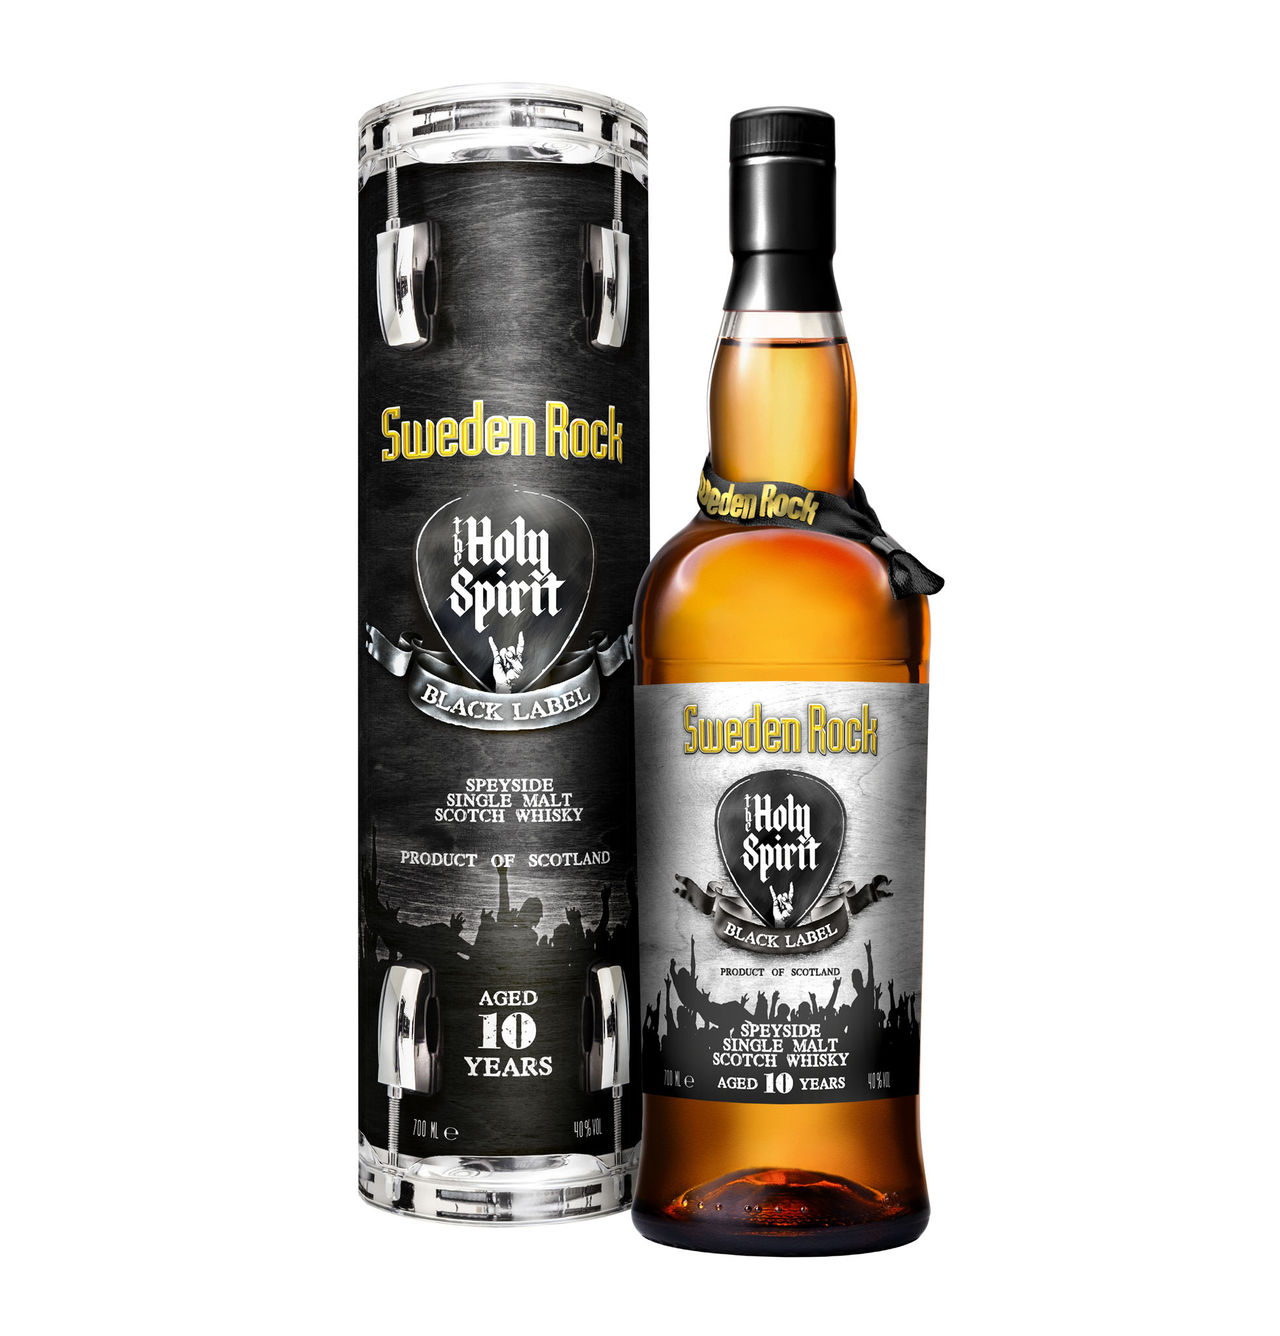 Ny Sweden Rock-whisky